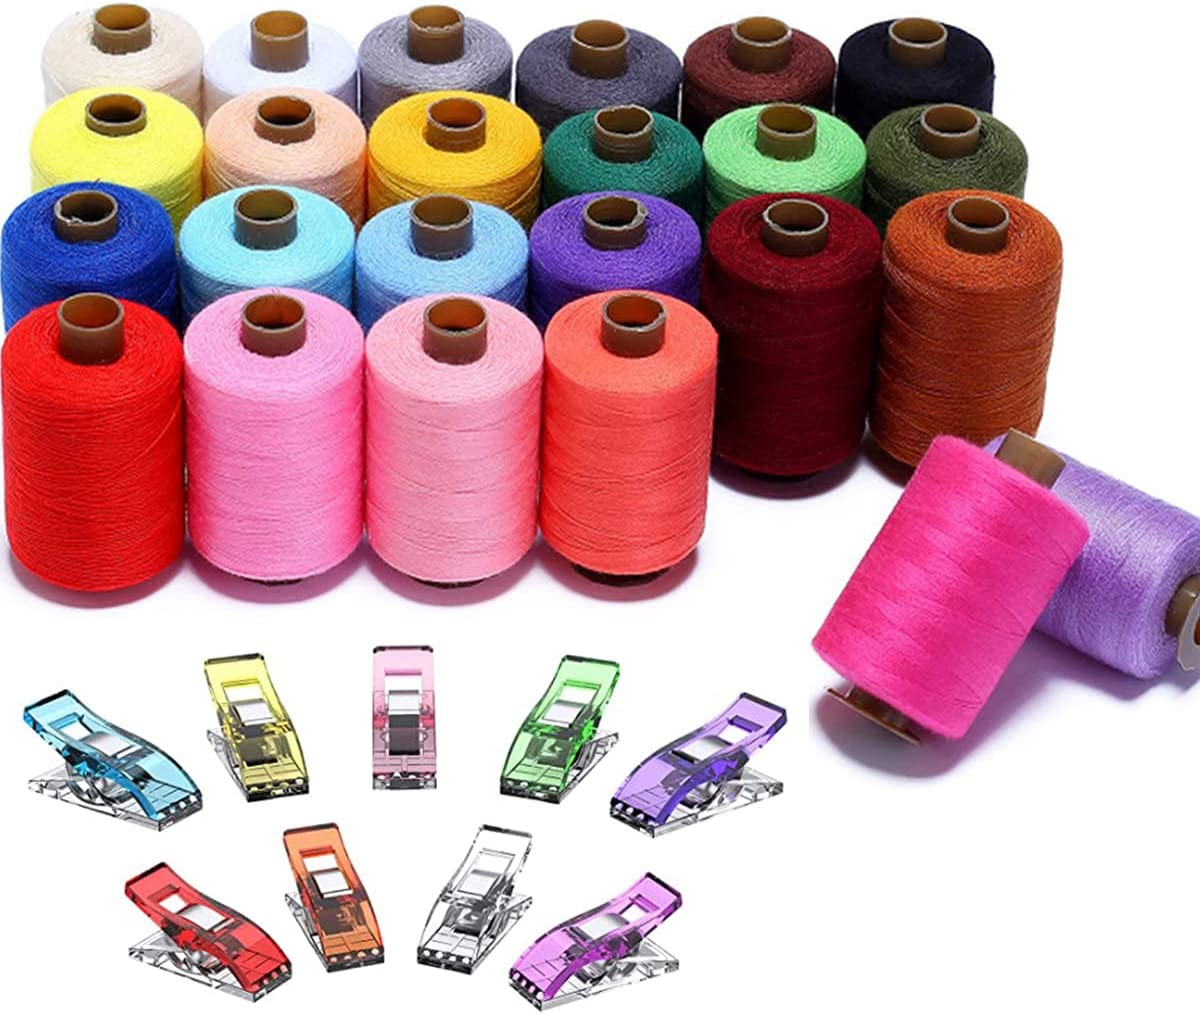 Sewing Thread 24 Color Threads Coil 100 Branded Ranking TOP3 goods Spools Cotton Assortment